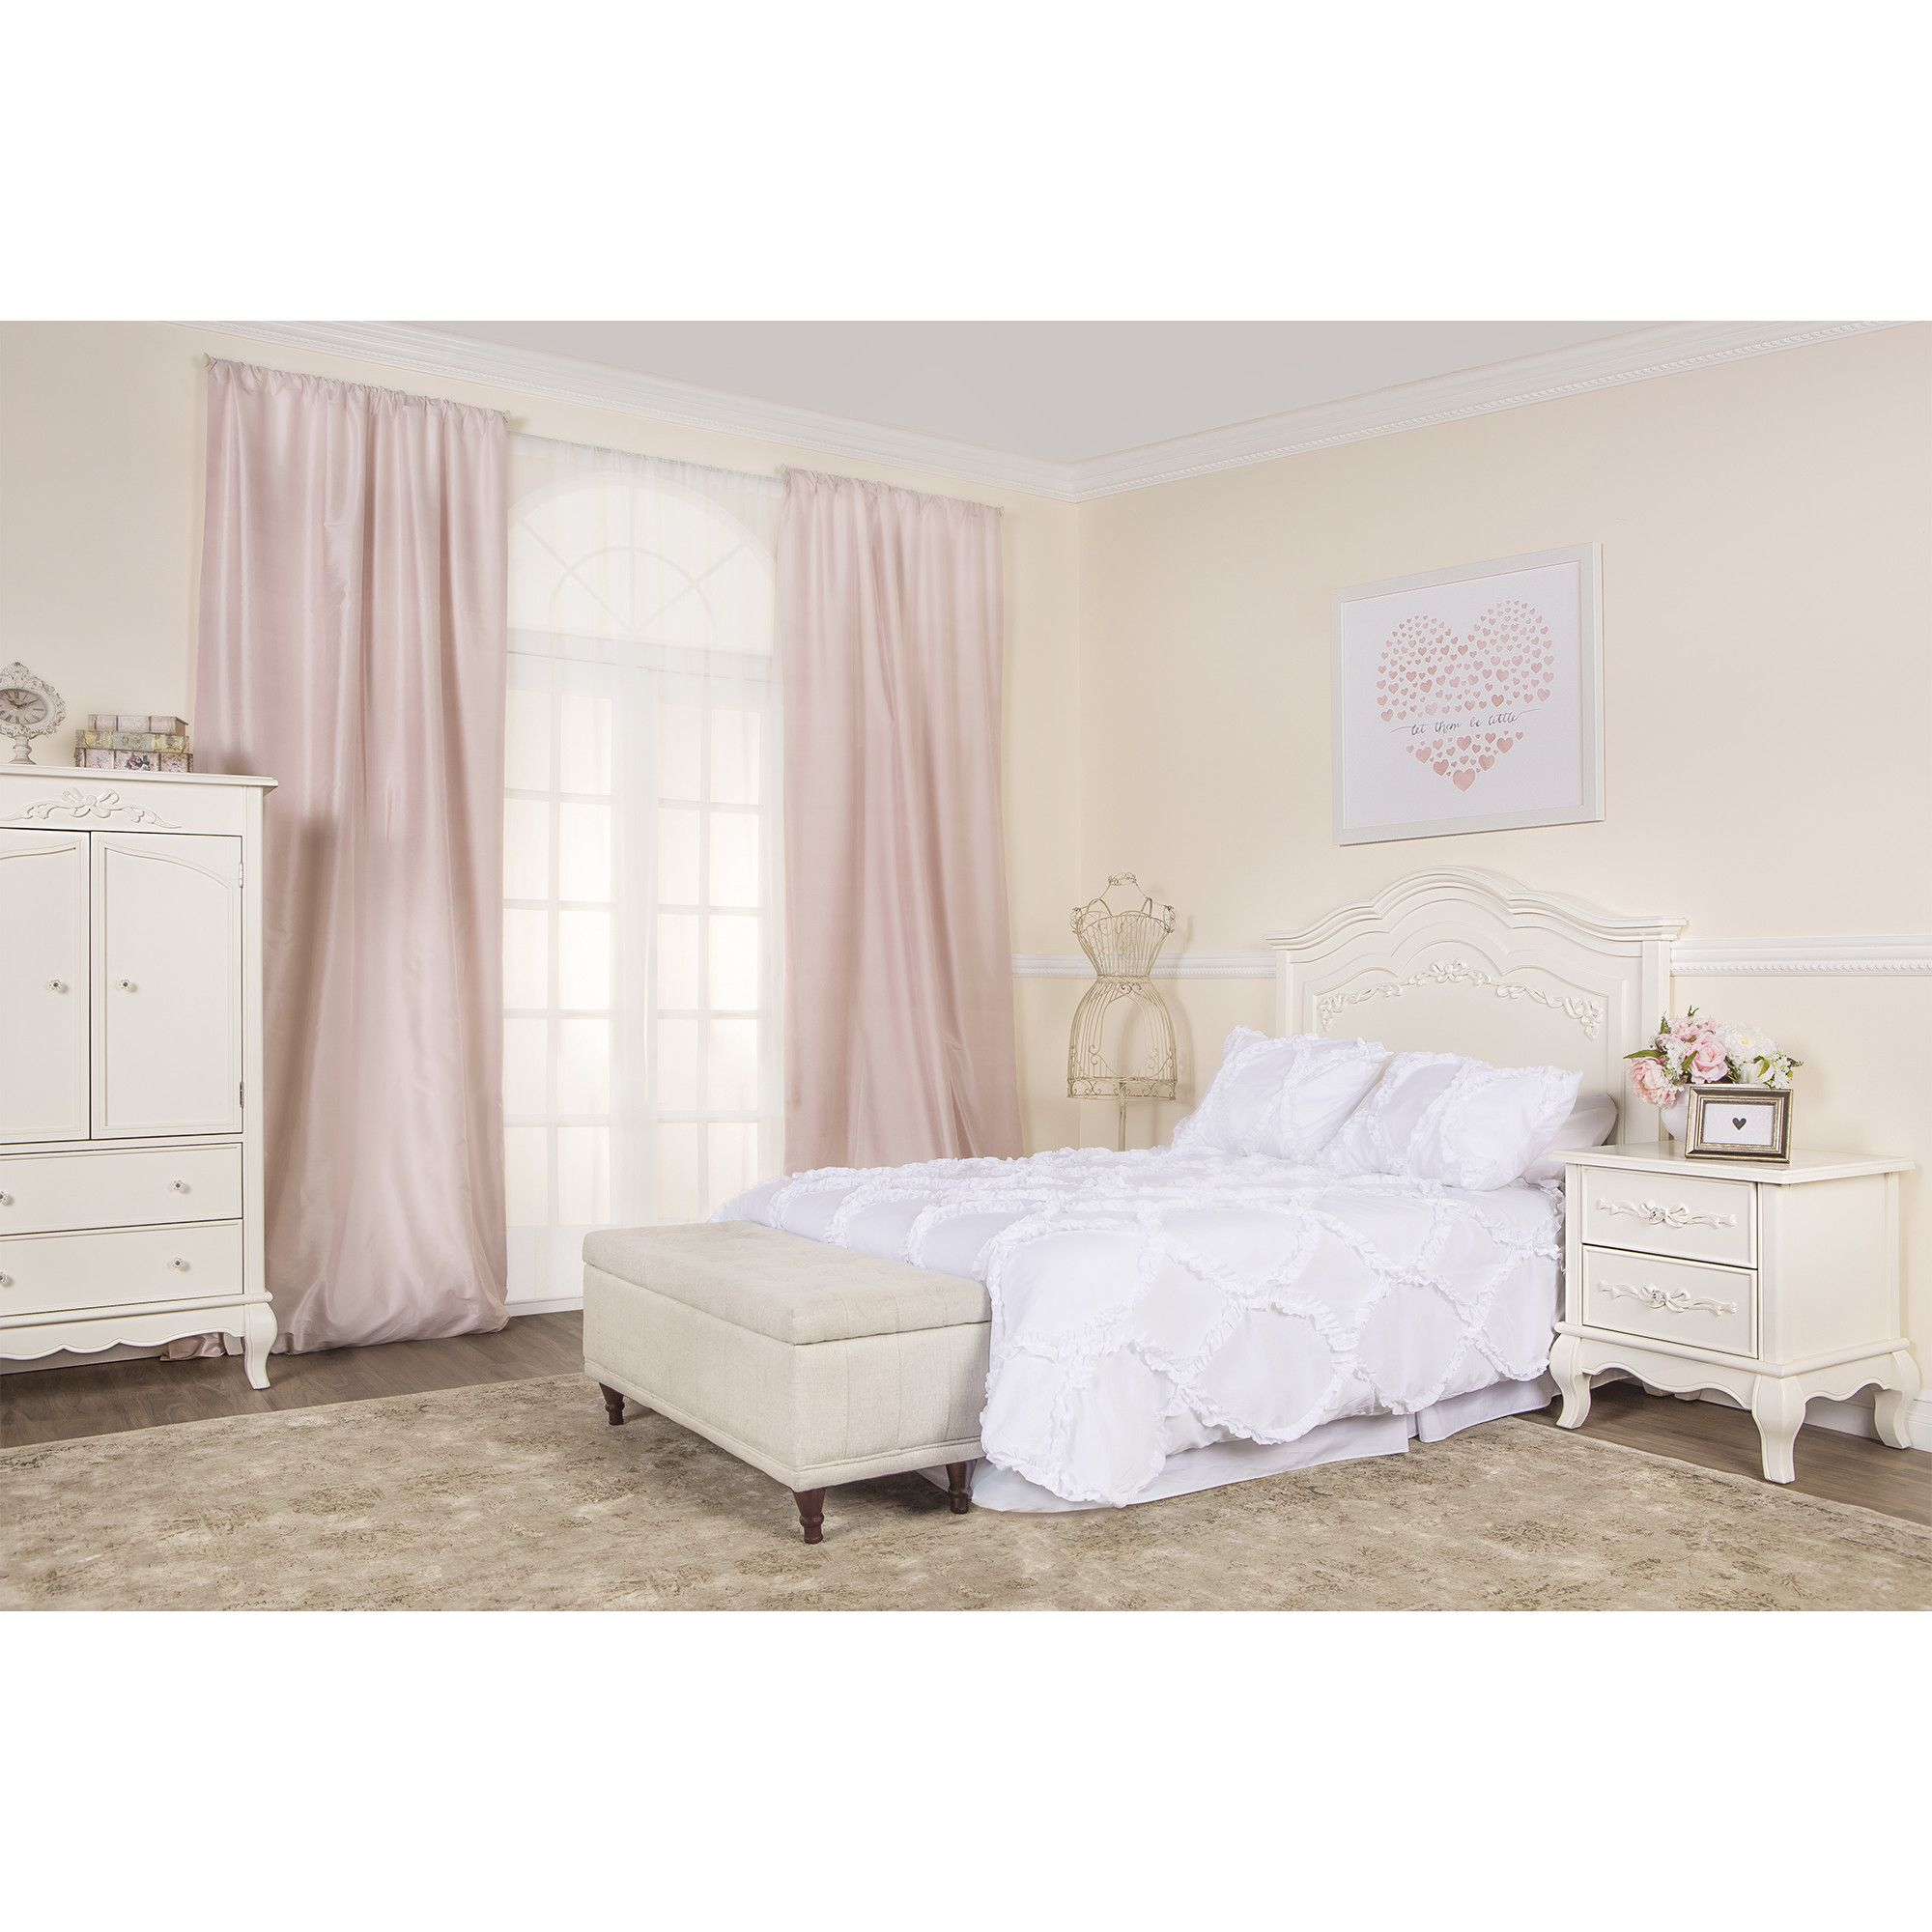 crafted pin size features room dried crib fine kiln with out of hardwood mattress veneer